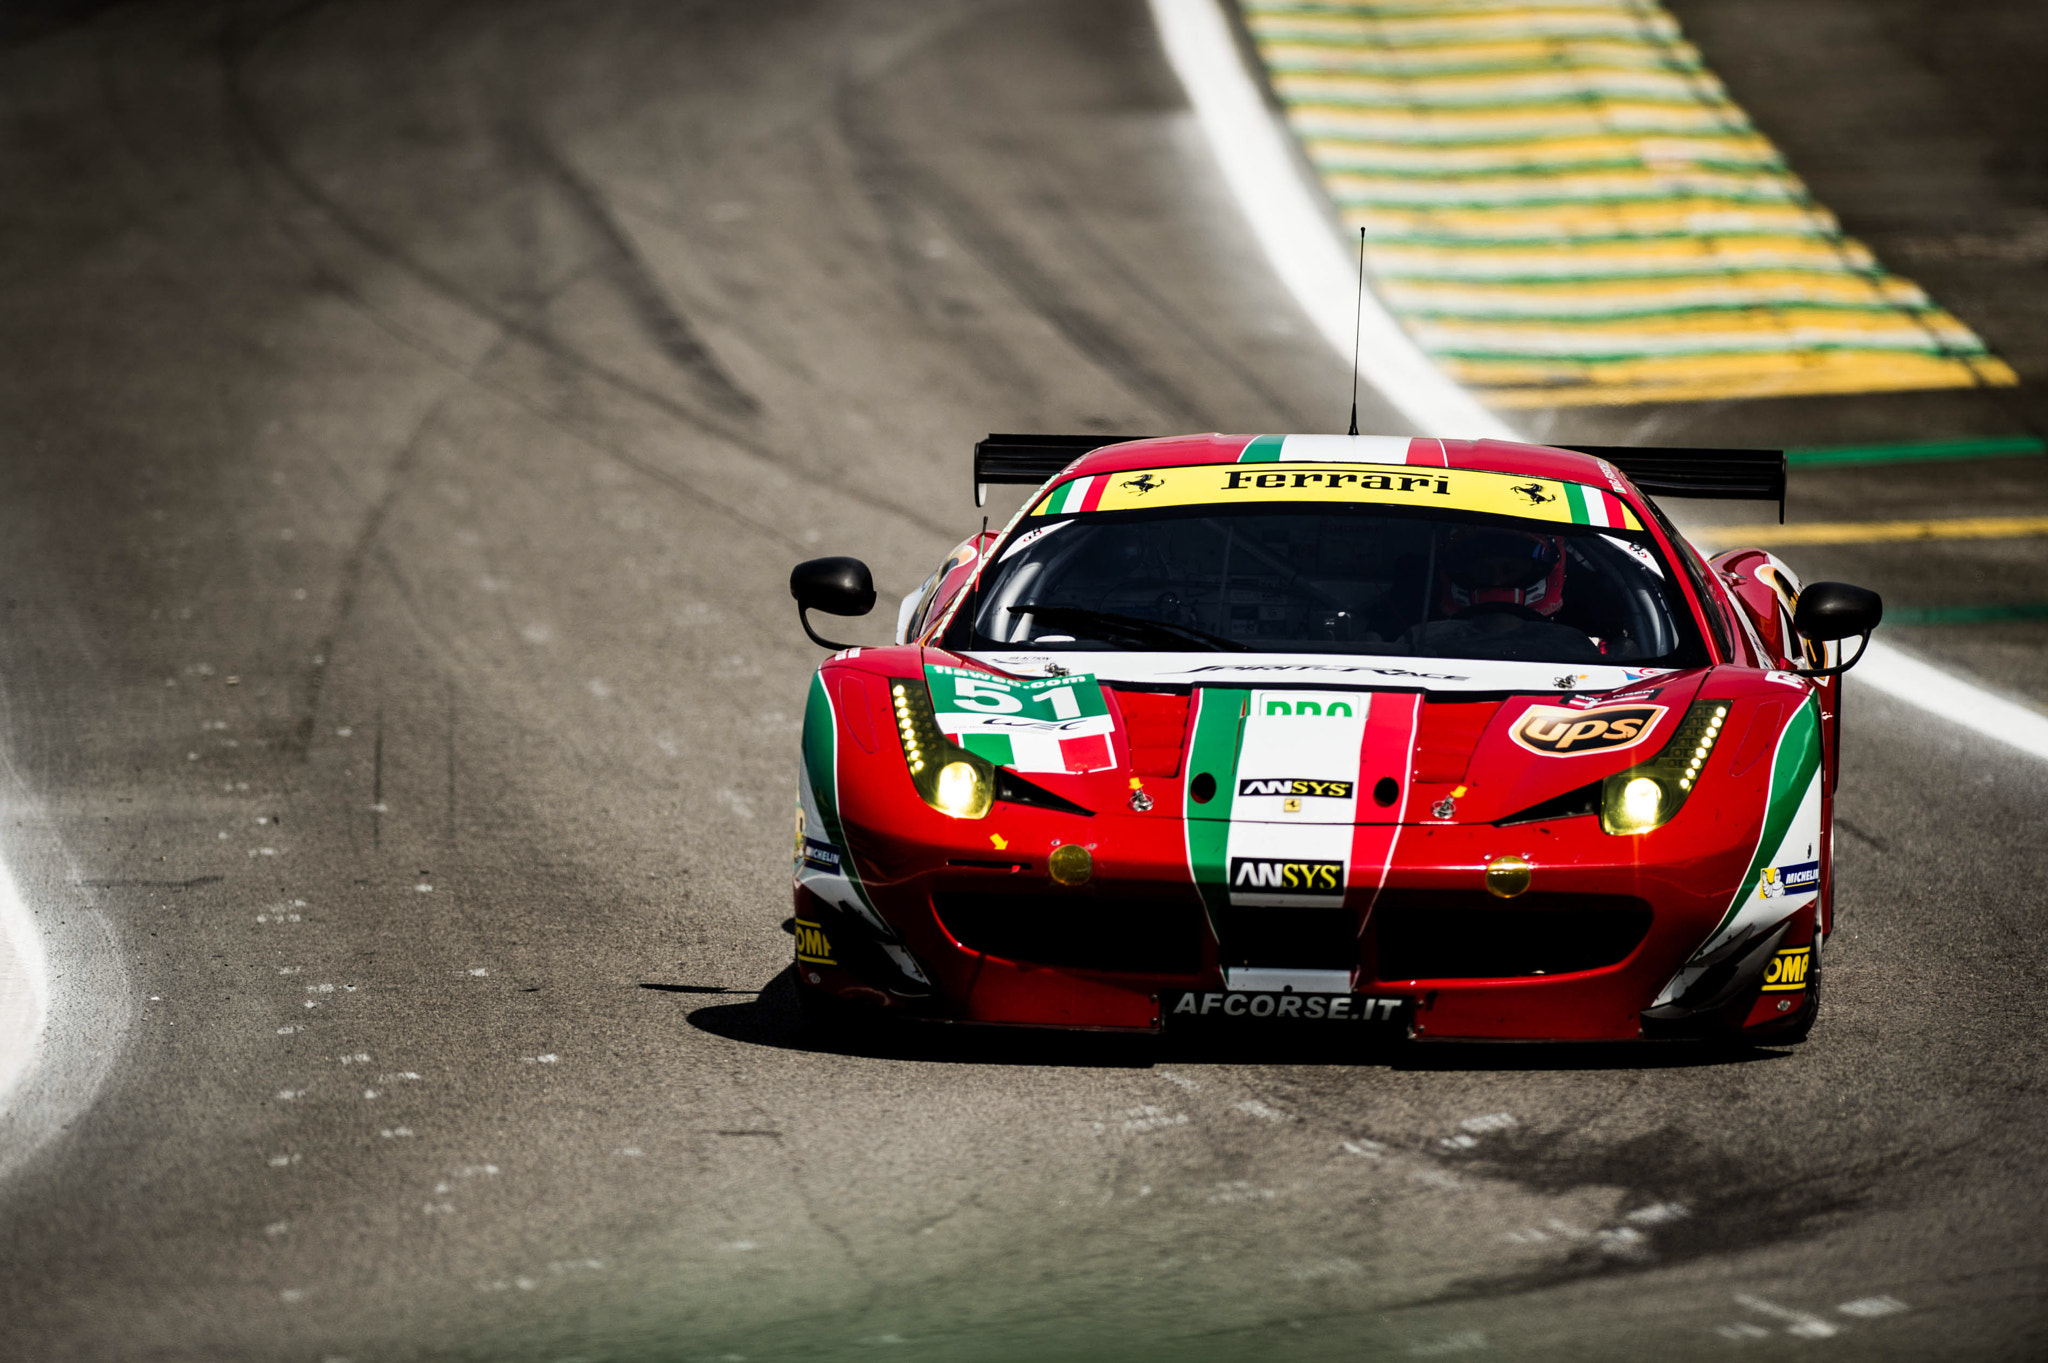 Photograph LeMans 6h of São Paulo - Ferrari 458 by Victor Eleutério on 500px